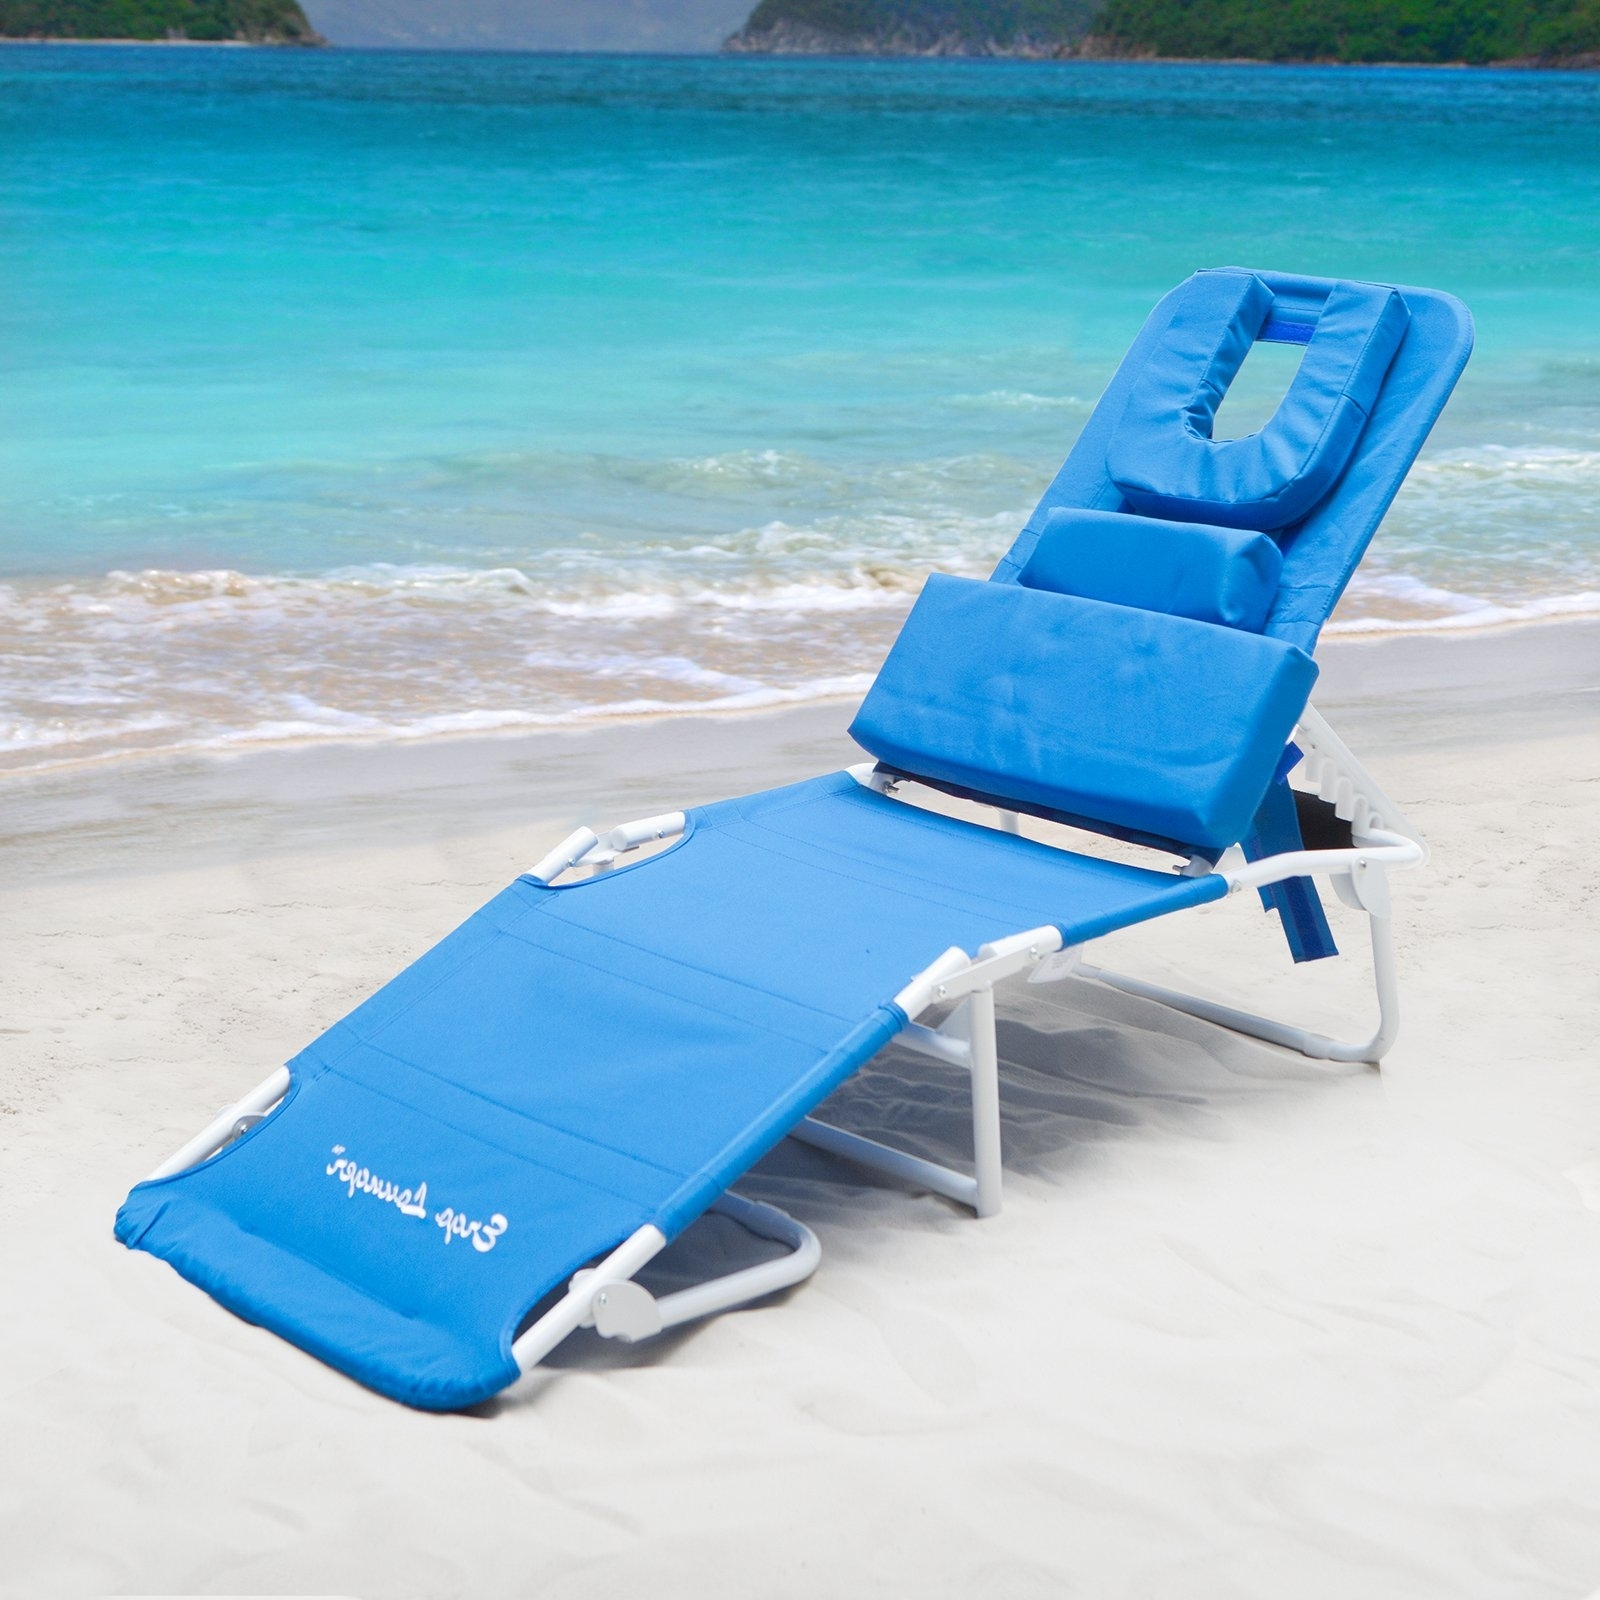 Popular Modern Beach Chaise Lounge Chairs Best House Design : Design Beach Pertaining To Chaise Lounge Beach Chairs (View 12 of 15)